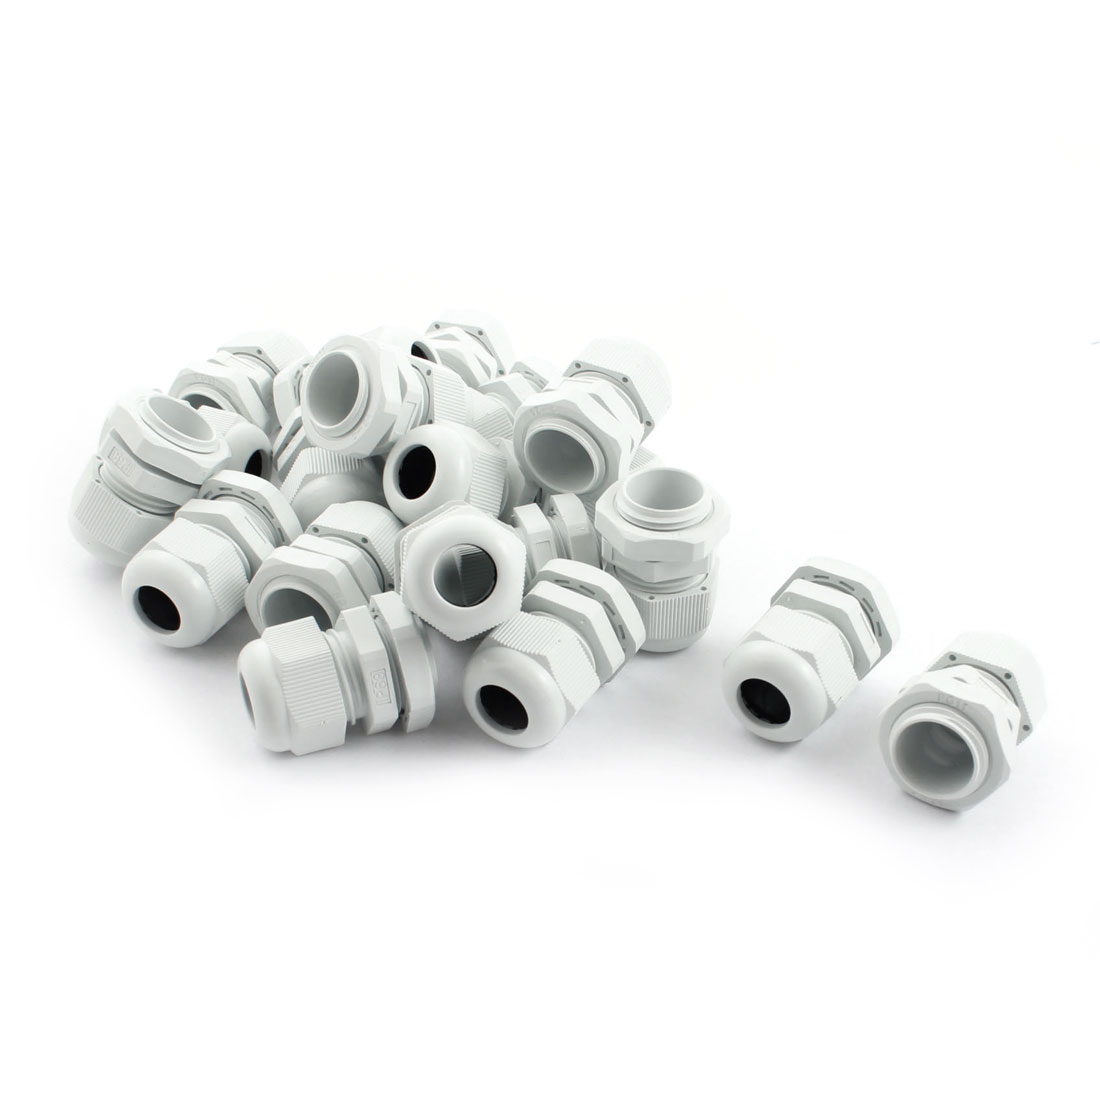 20Pcs Waterproof Gland Connector PG11 w Nut for 5-10mm Dia Cable Wire